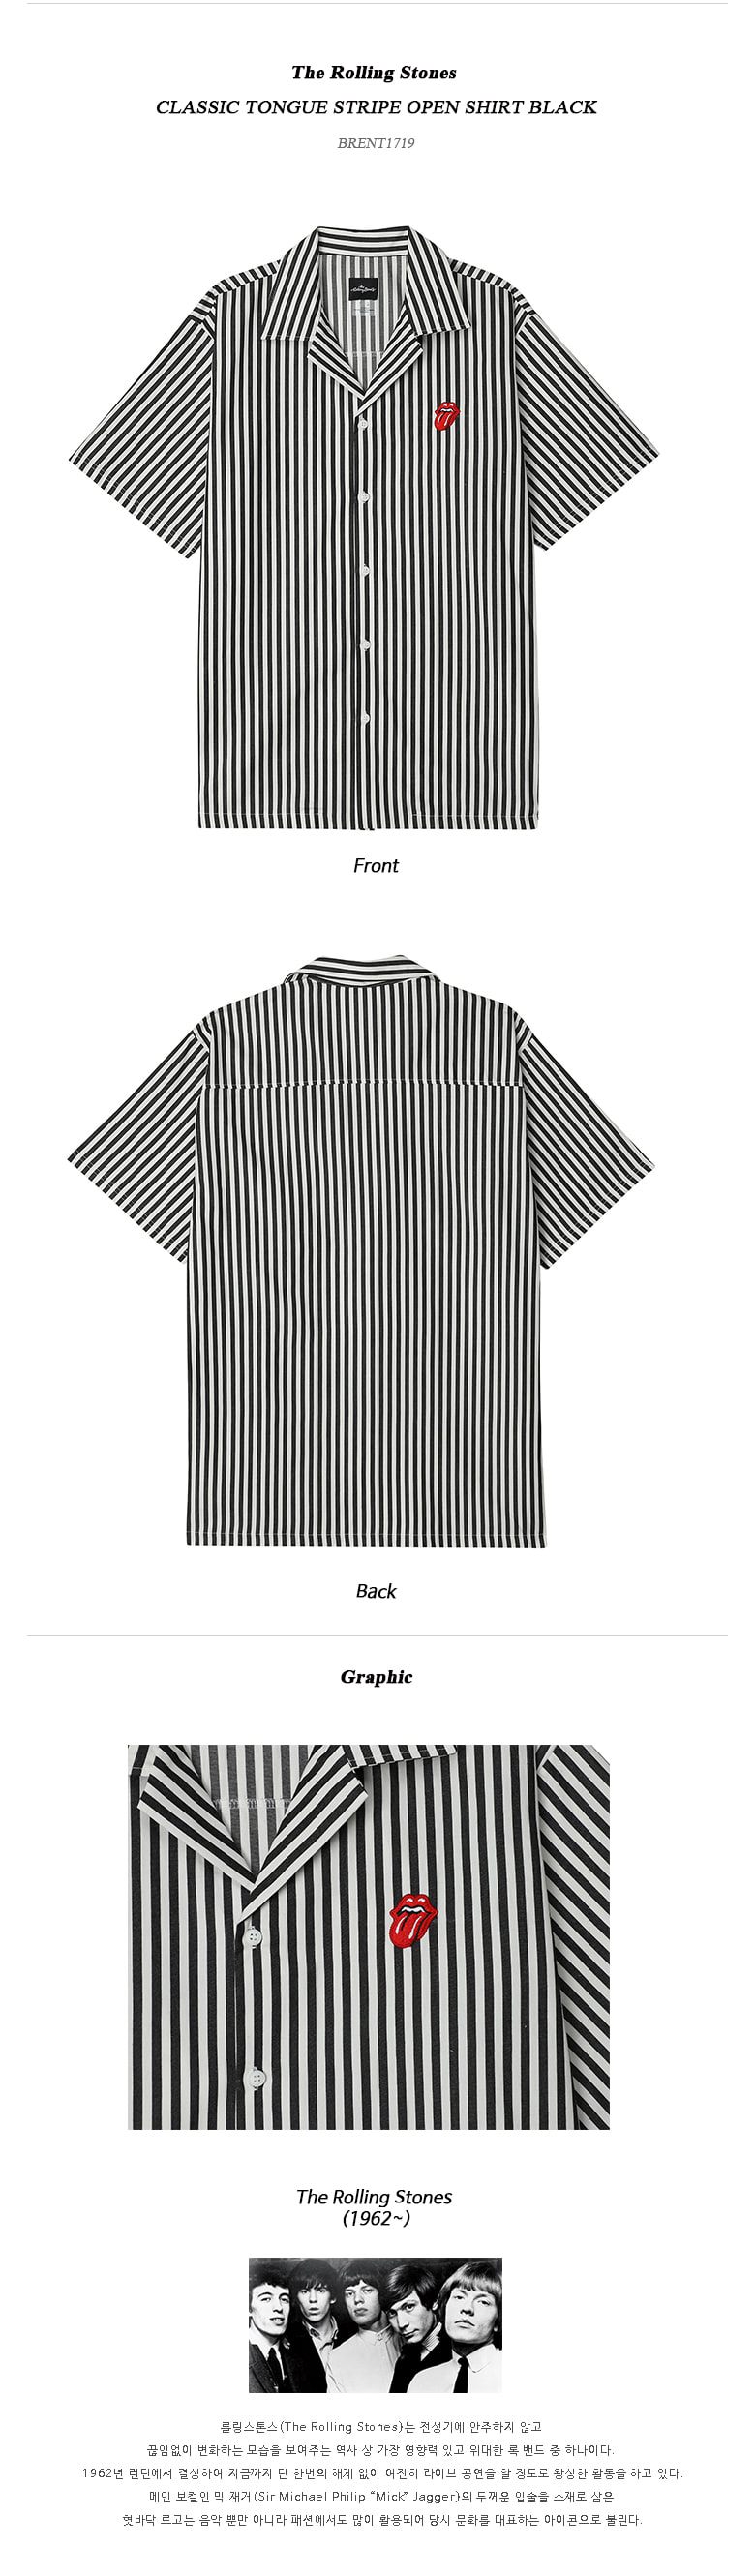 브라바도 TRS CLASSIC TONGUE STRIPE OPEN SHIRT BK (BRENT1719)